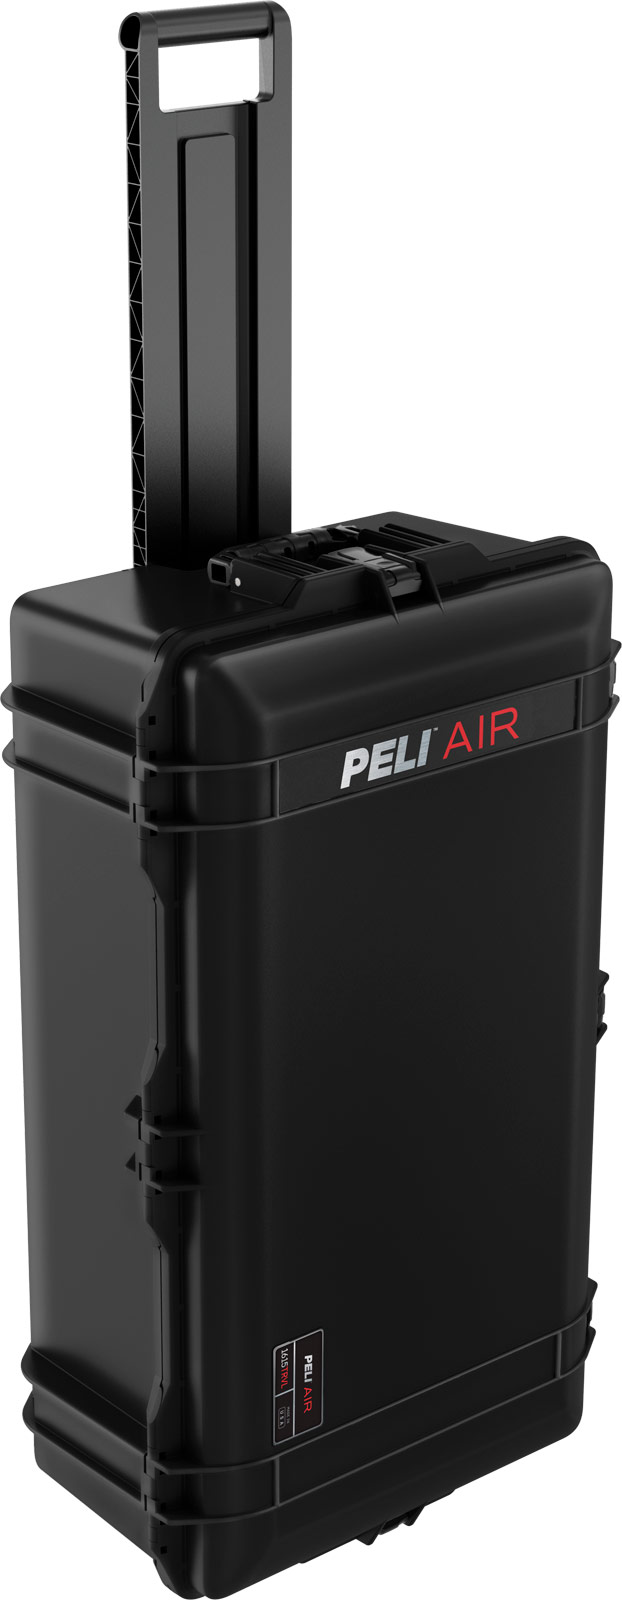 peli 1615 air wheeled luggage case